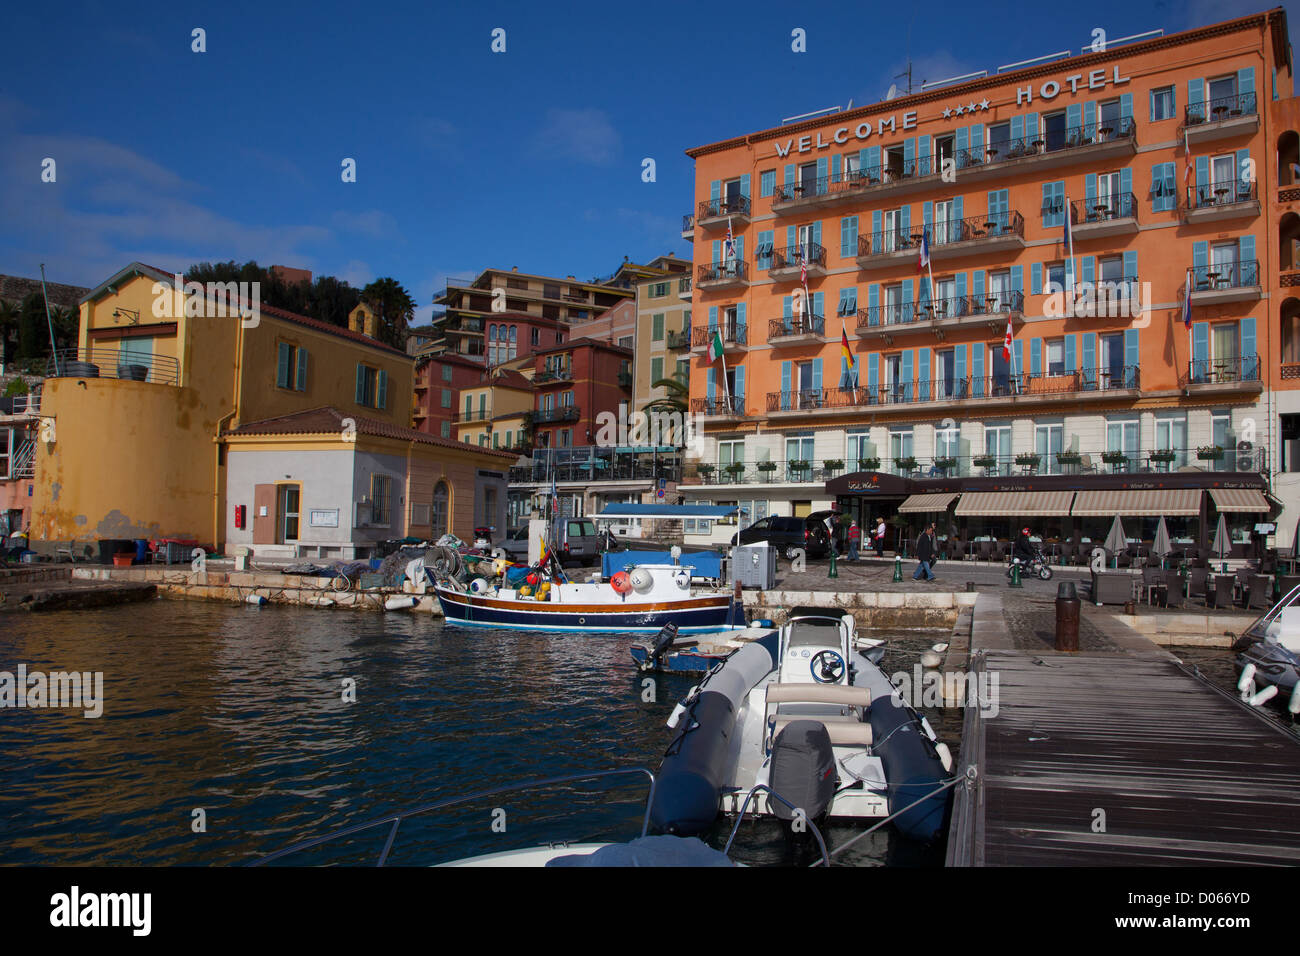 FACADE OF THE HOTEL WELCOME WHERE JEAN COCTEAU OFTEN STAYED ON THE PORT OF VILLEFRANCHE-SUR-MER ALPES-MARITIMES - Stock Image